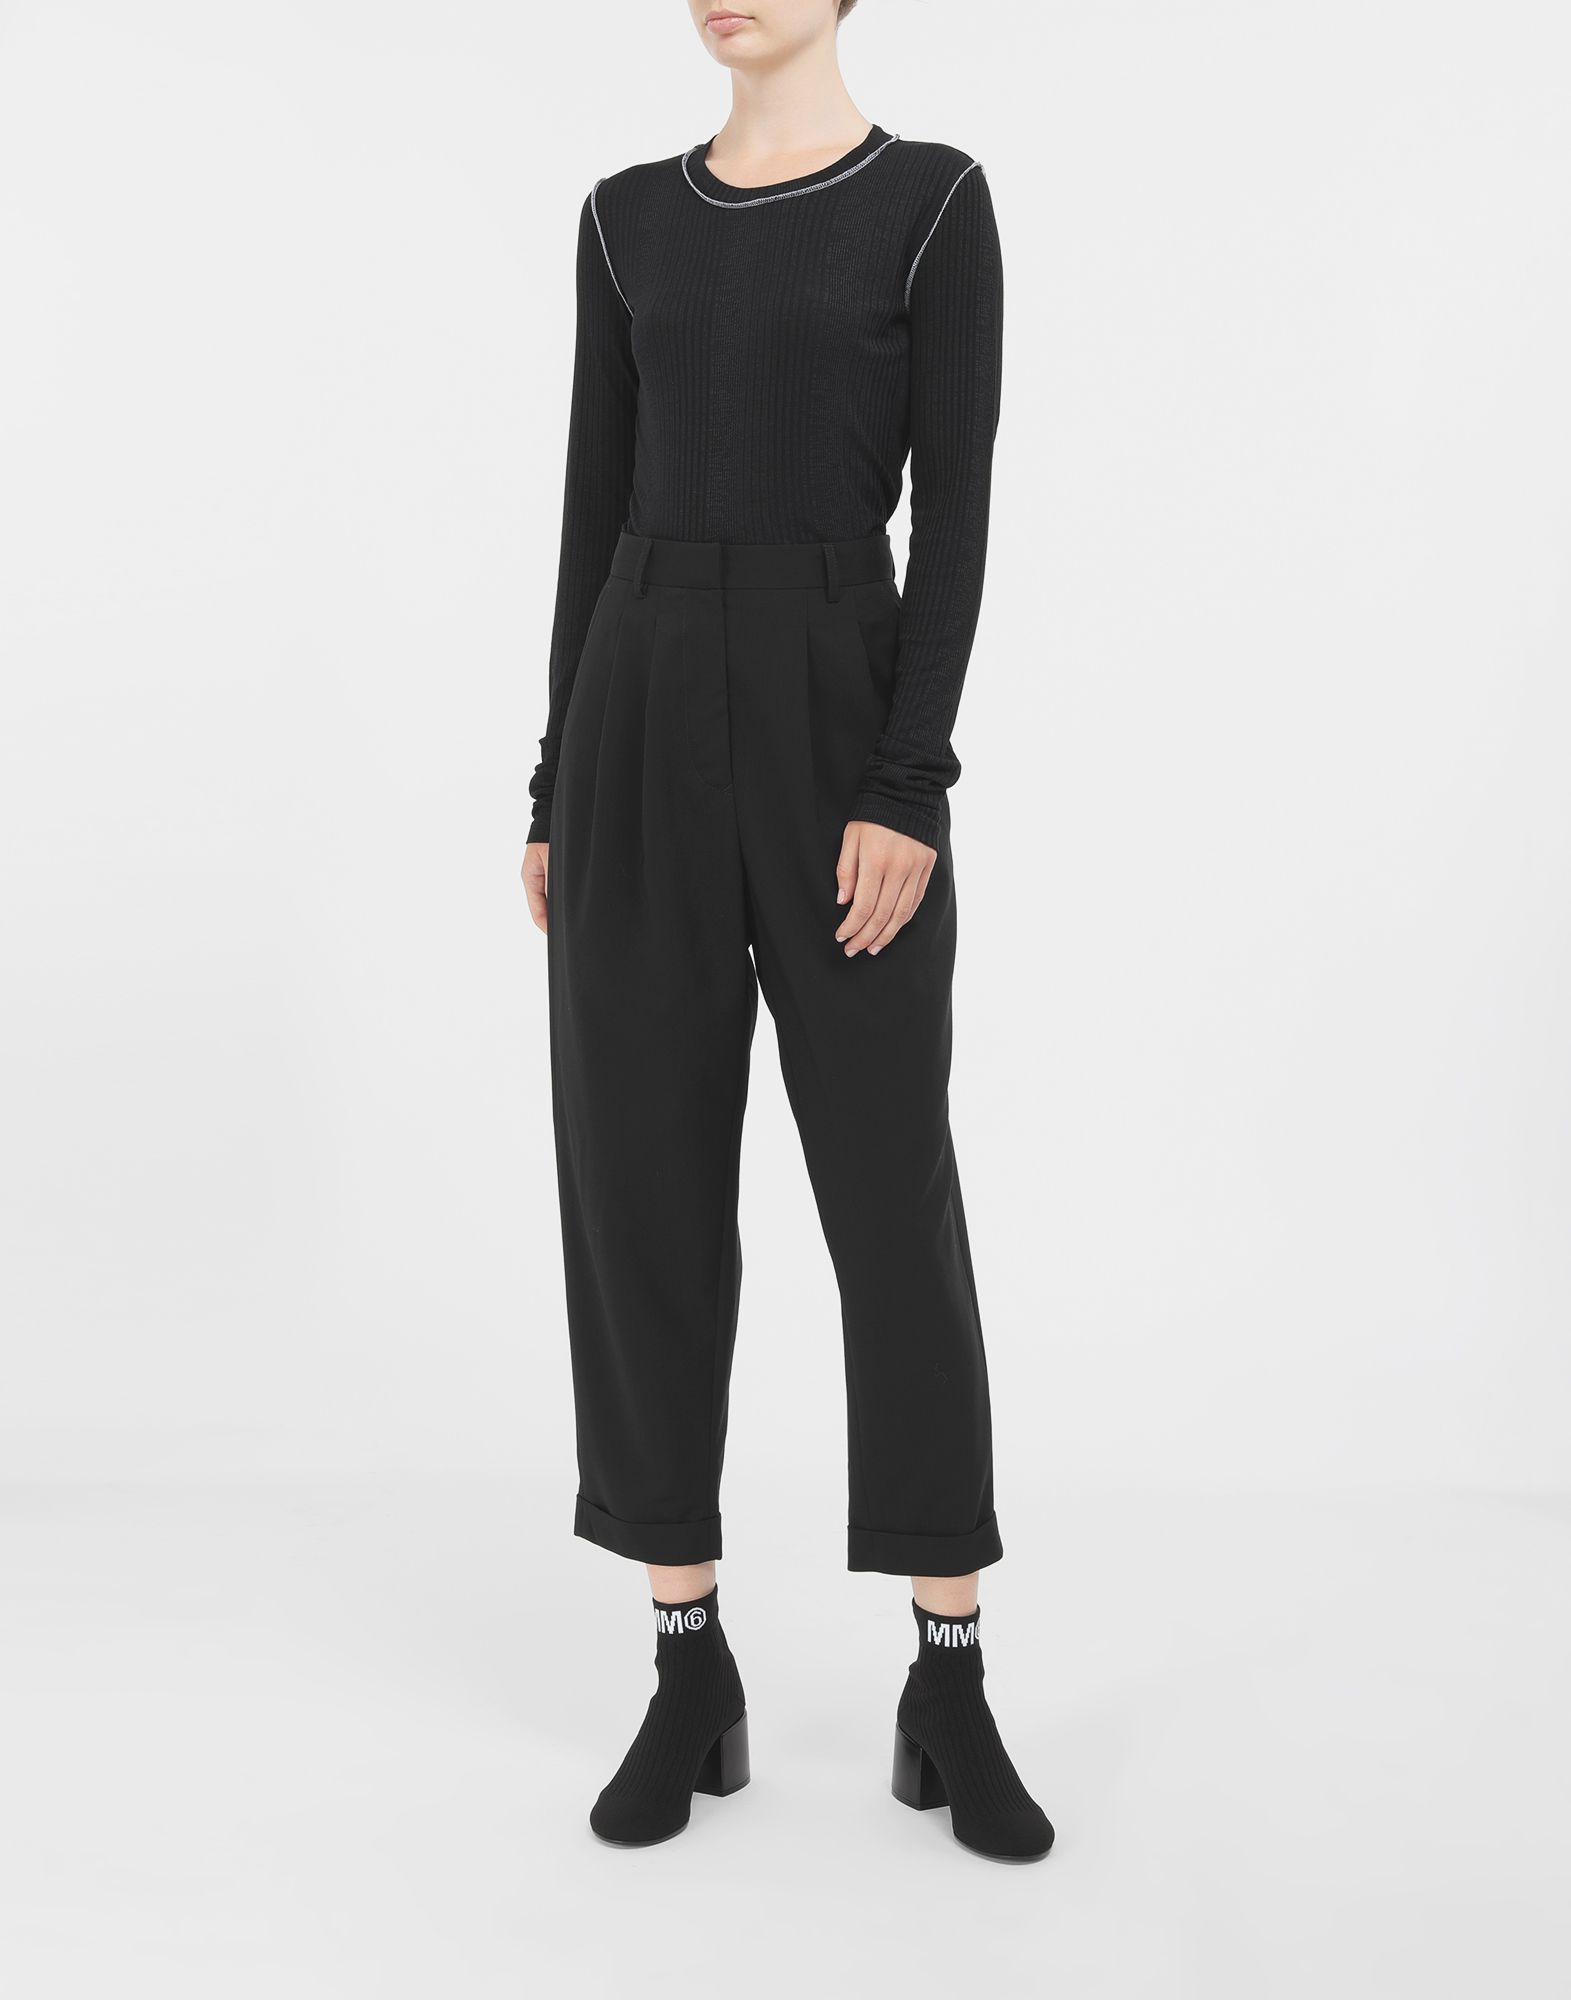 MM6 MAISON MARGIELA Tapered trousers Trousers Woman d